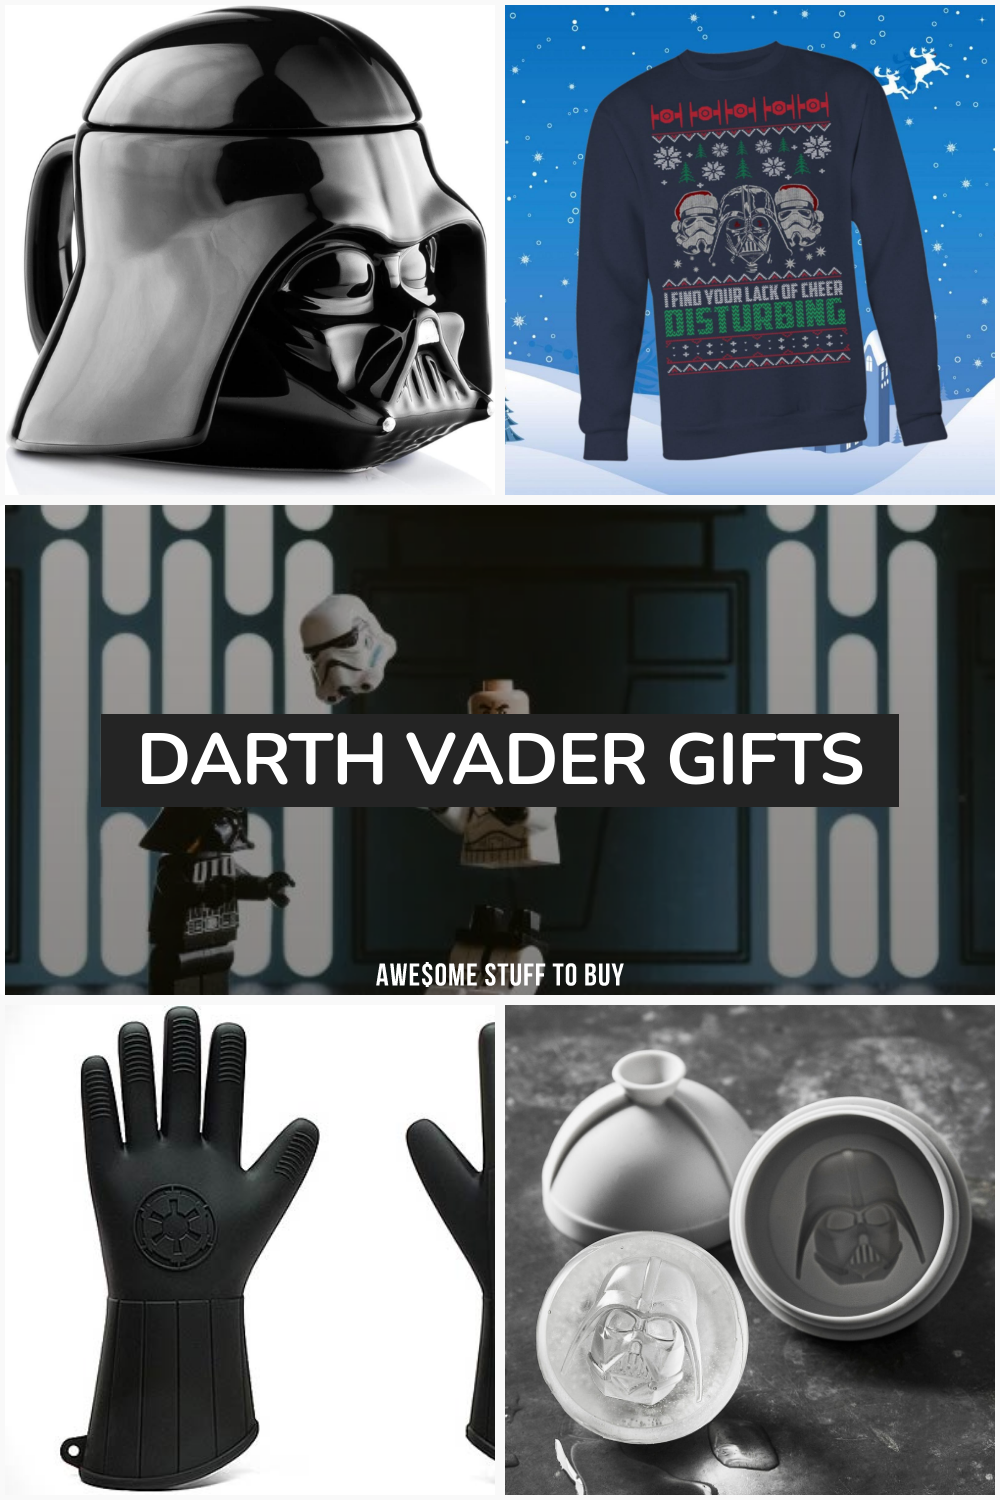 Darth Vader Gifts // Awesome Stuff to Buy